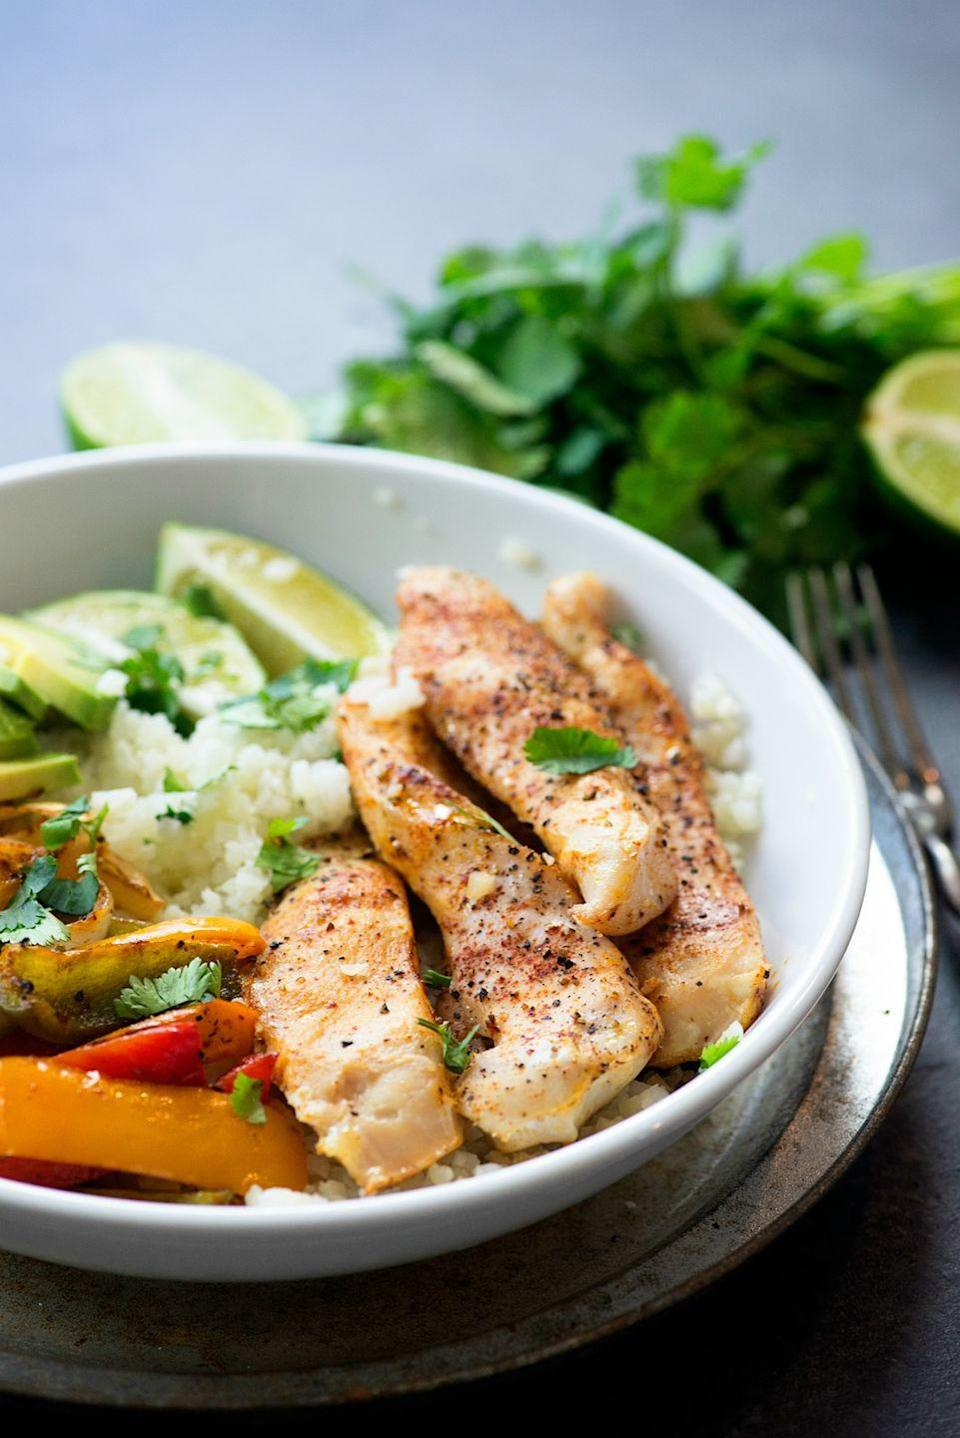 "<p>Because a diet without Mexican food is one we can't stick to.</p><p>Get the recipe from <a href=""https://www.delish.com/cooking/recipe-ideas/recipes/a52149/chicken-fajita-cauliflower-rice-bowls-recipe/"" rel=""nofollow noopener"" target=""_blank"" data-ylk=""slk:Delish"" class=""link rapid-noclick-resp"">Delish</a>.</p>"